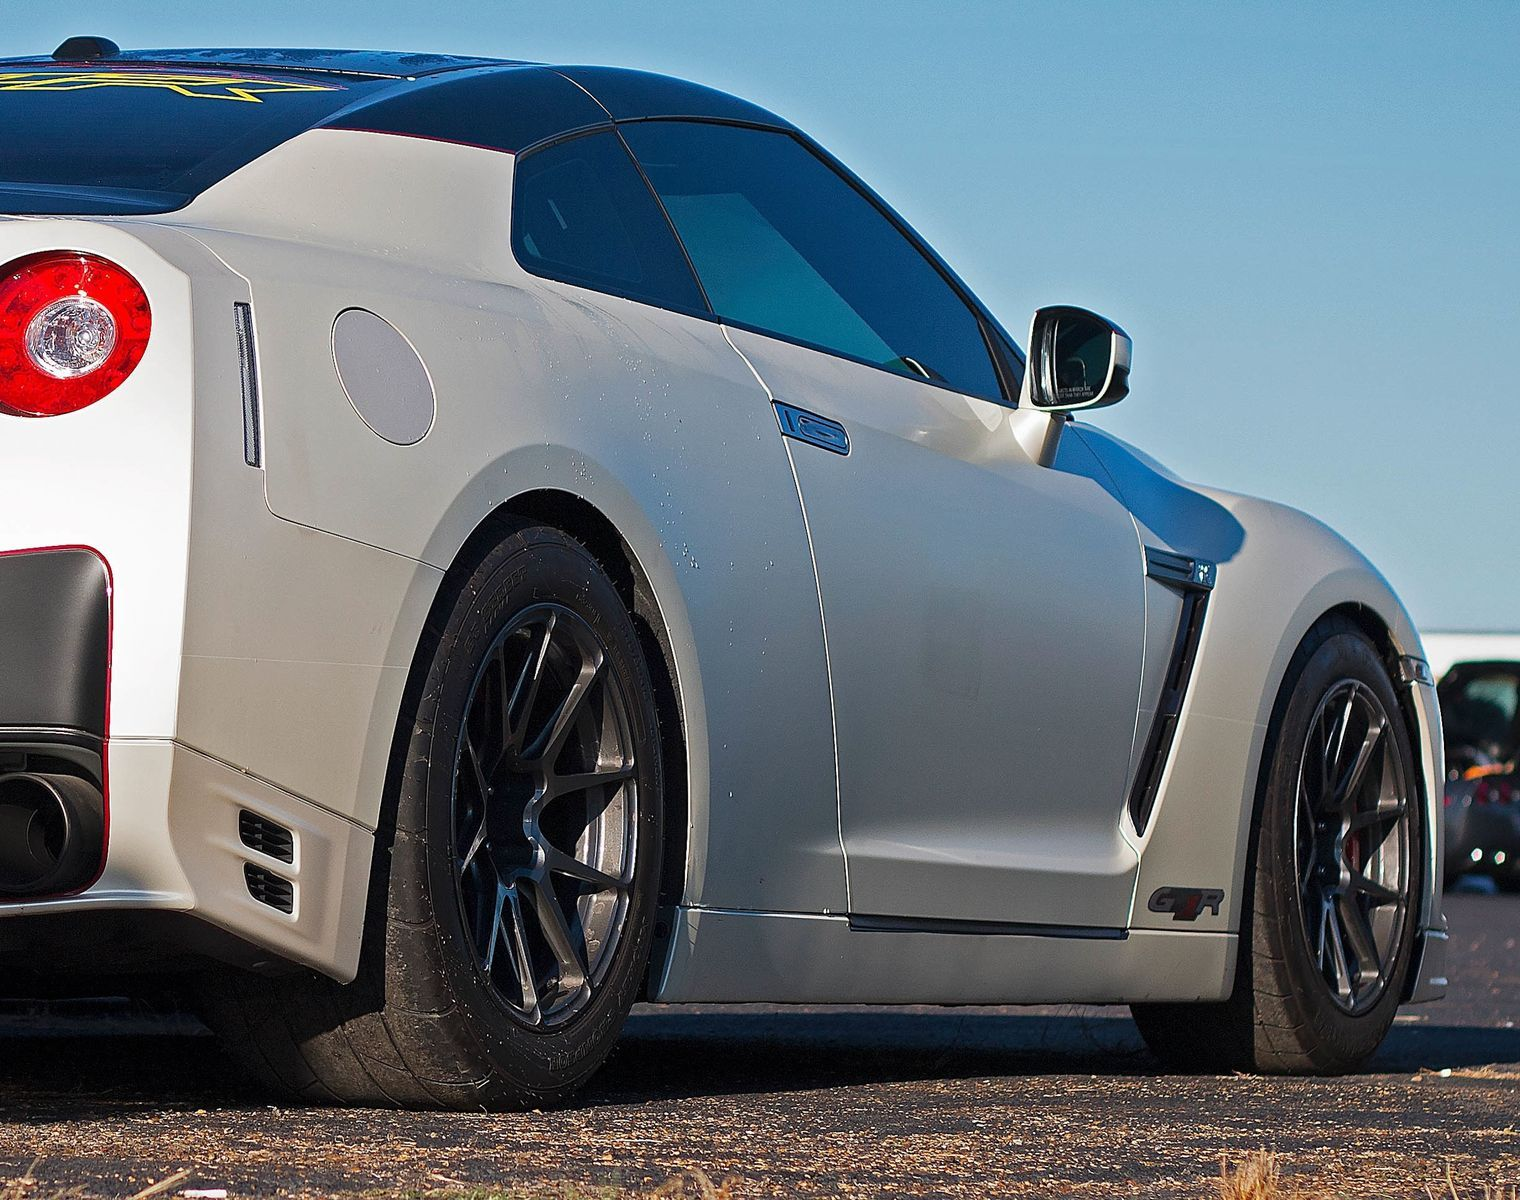 2012 Nissan GT-R | Rob's 1200whp Nissan GT-R on Forgeline One Piece Forged Monoblock GA1R Open Lug Wheels